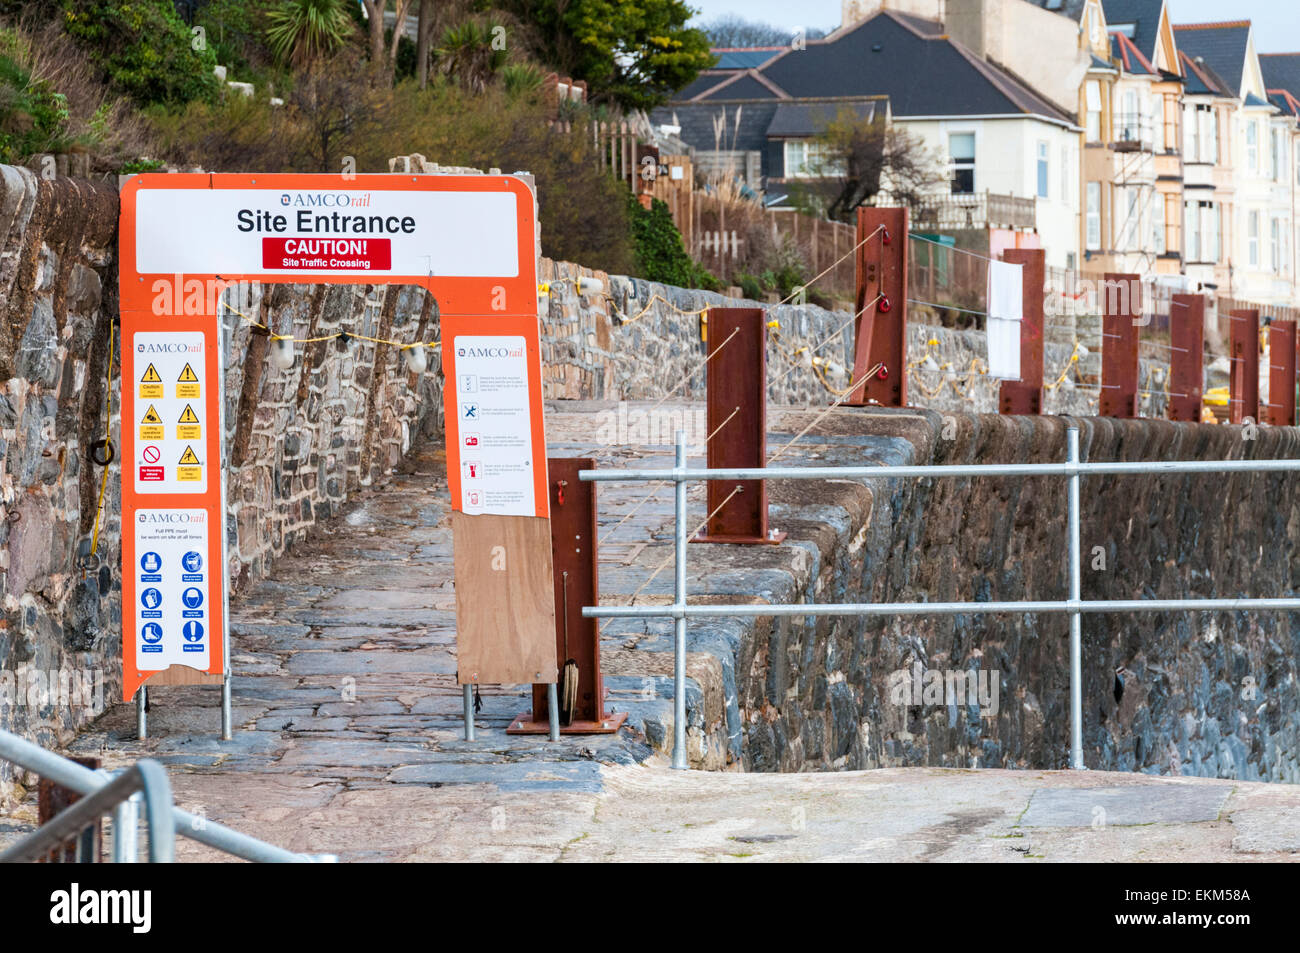 Site entrance to a construction site on Dawlish seawall in Devon - Stock Image